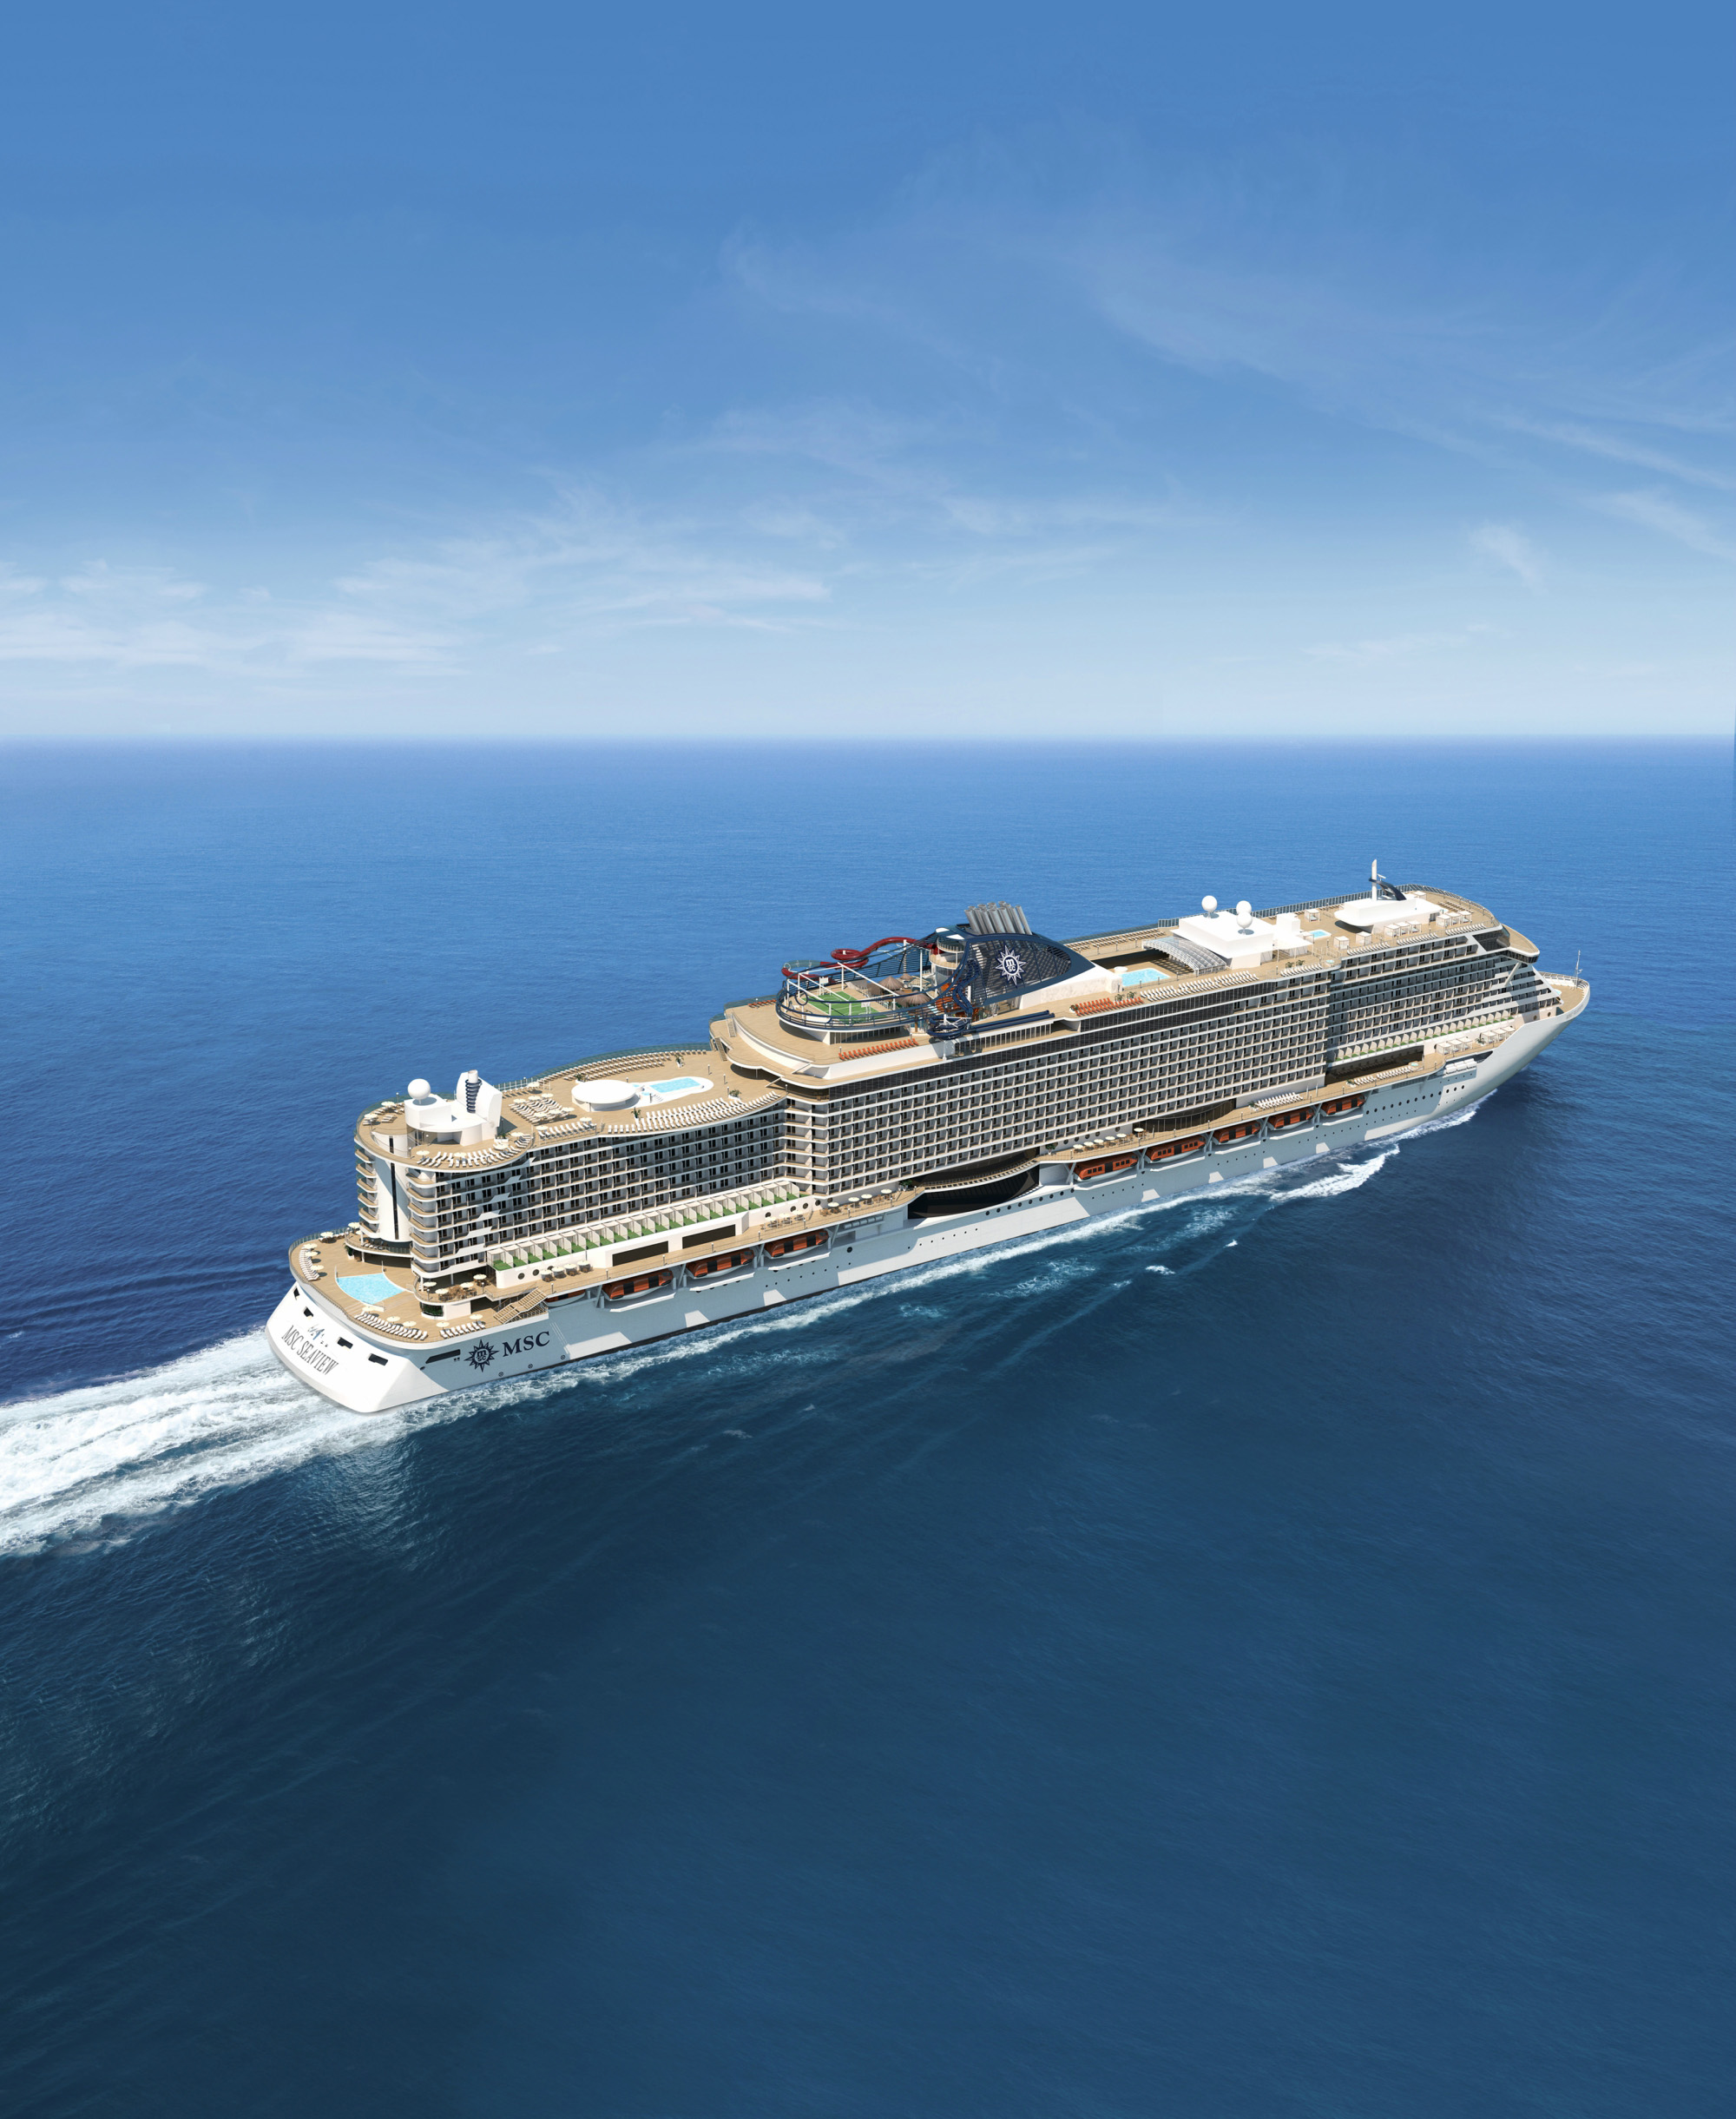 1523266502_msc_seaview_3.jpg